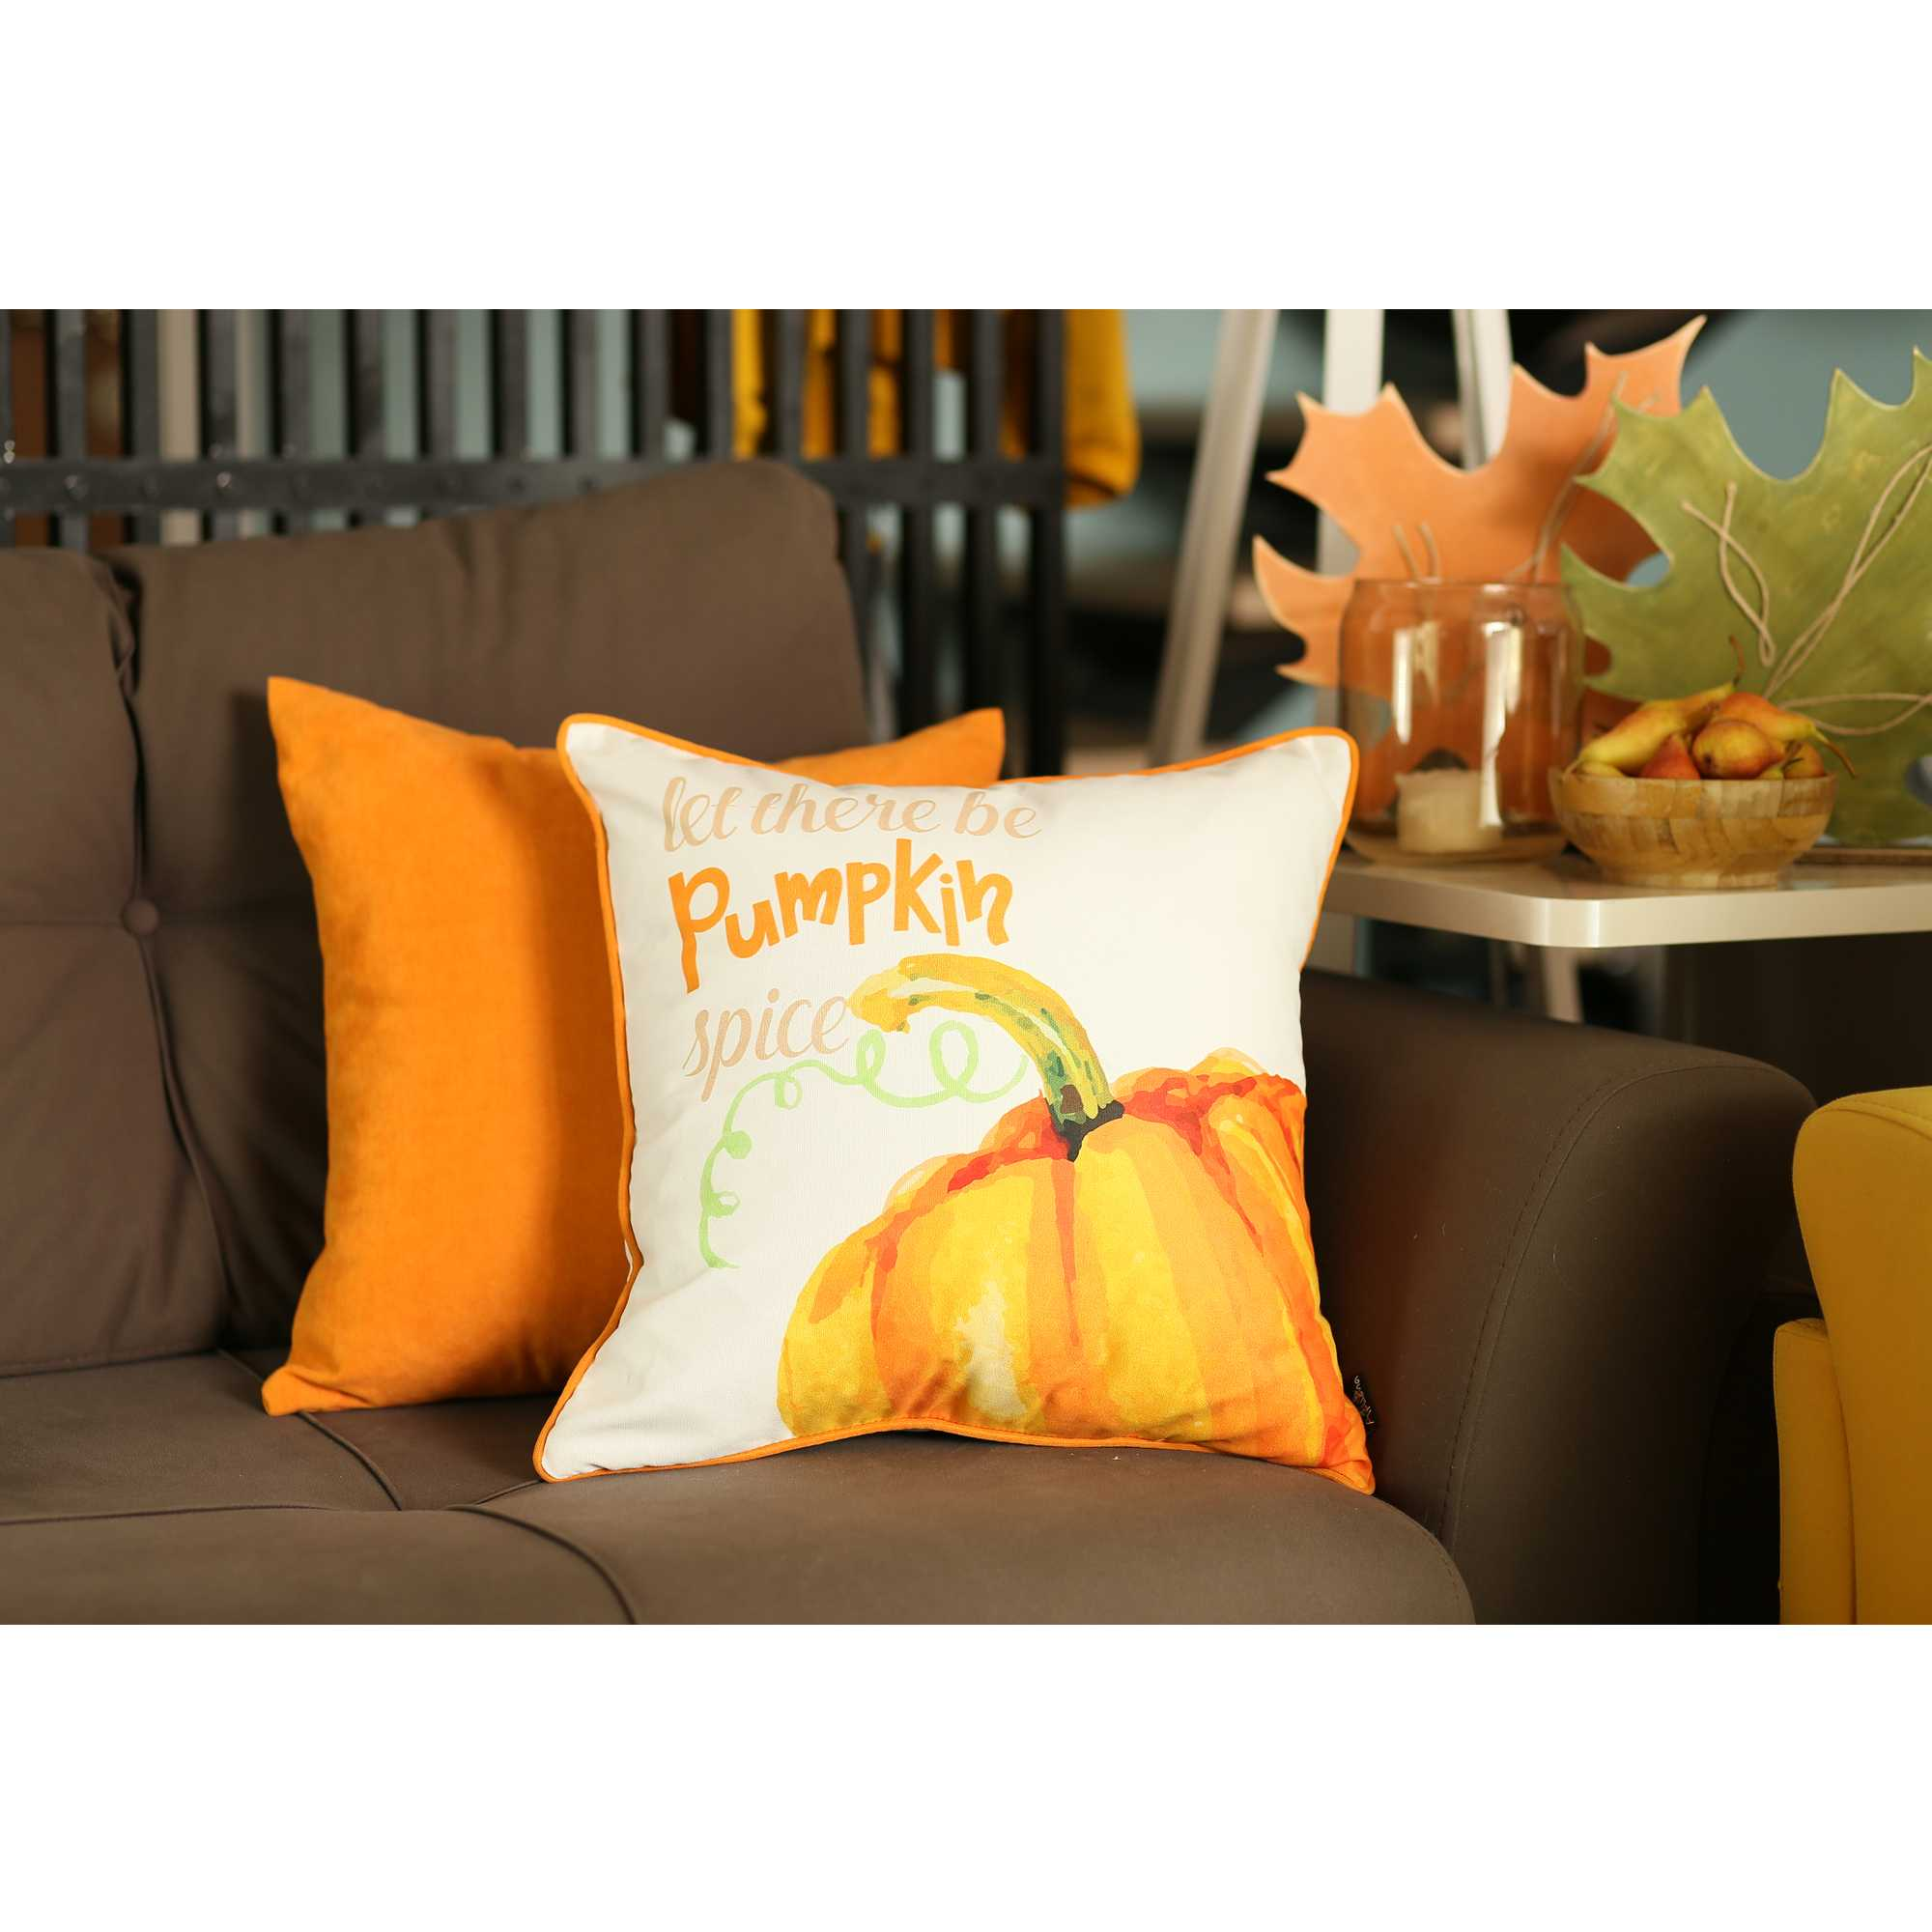 "18""x 18"" Thankful Pumpkin Love Printed Decorative Throw Pillow Cover"